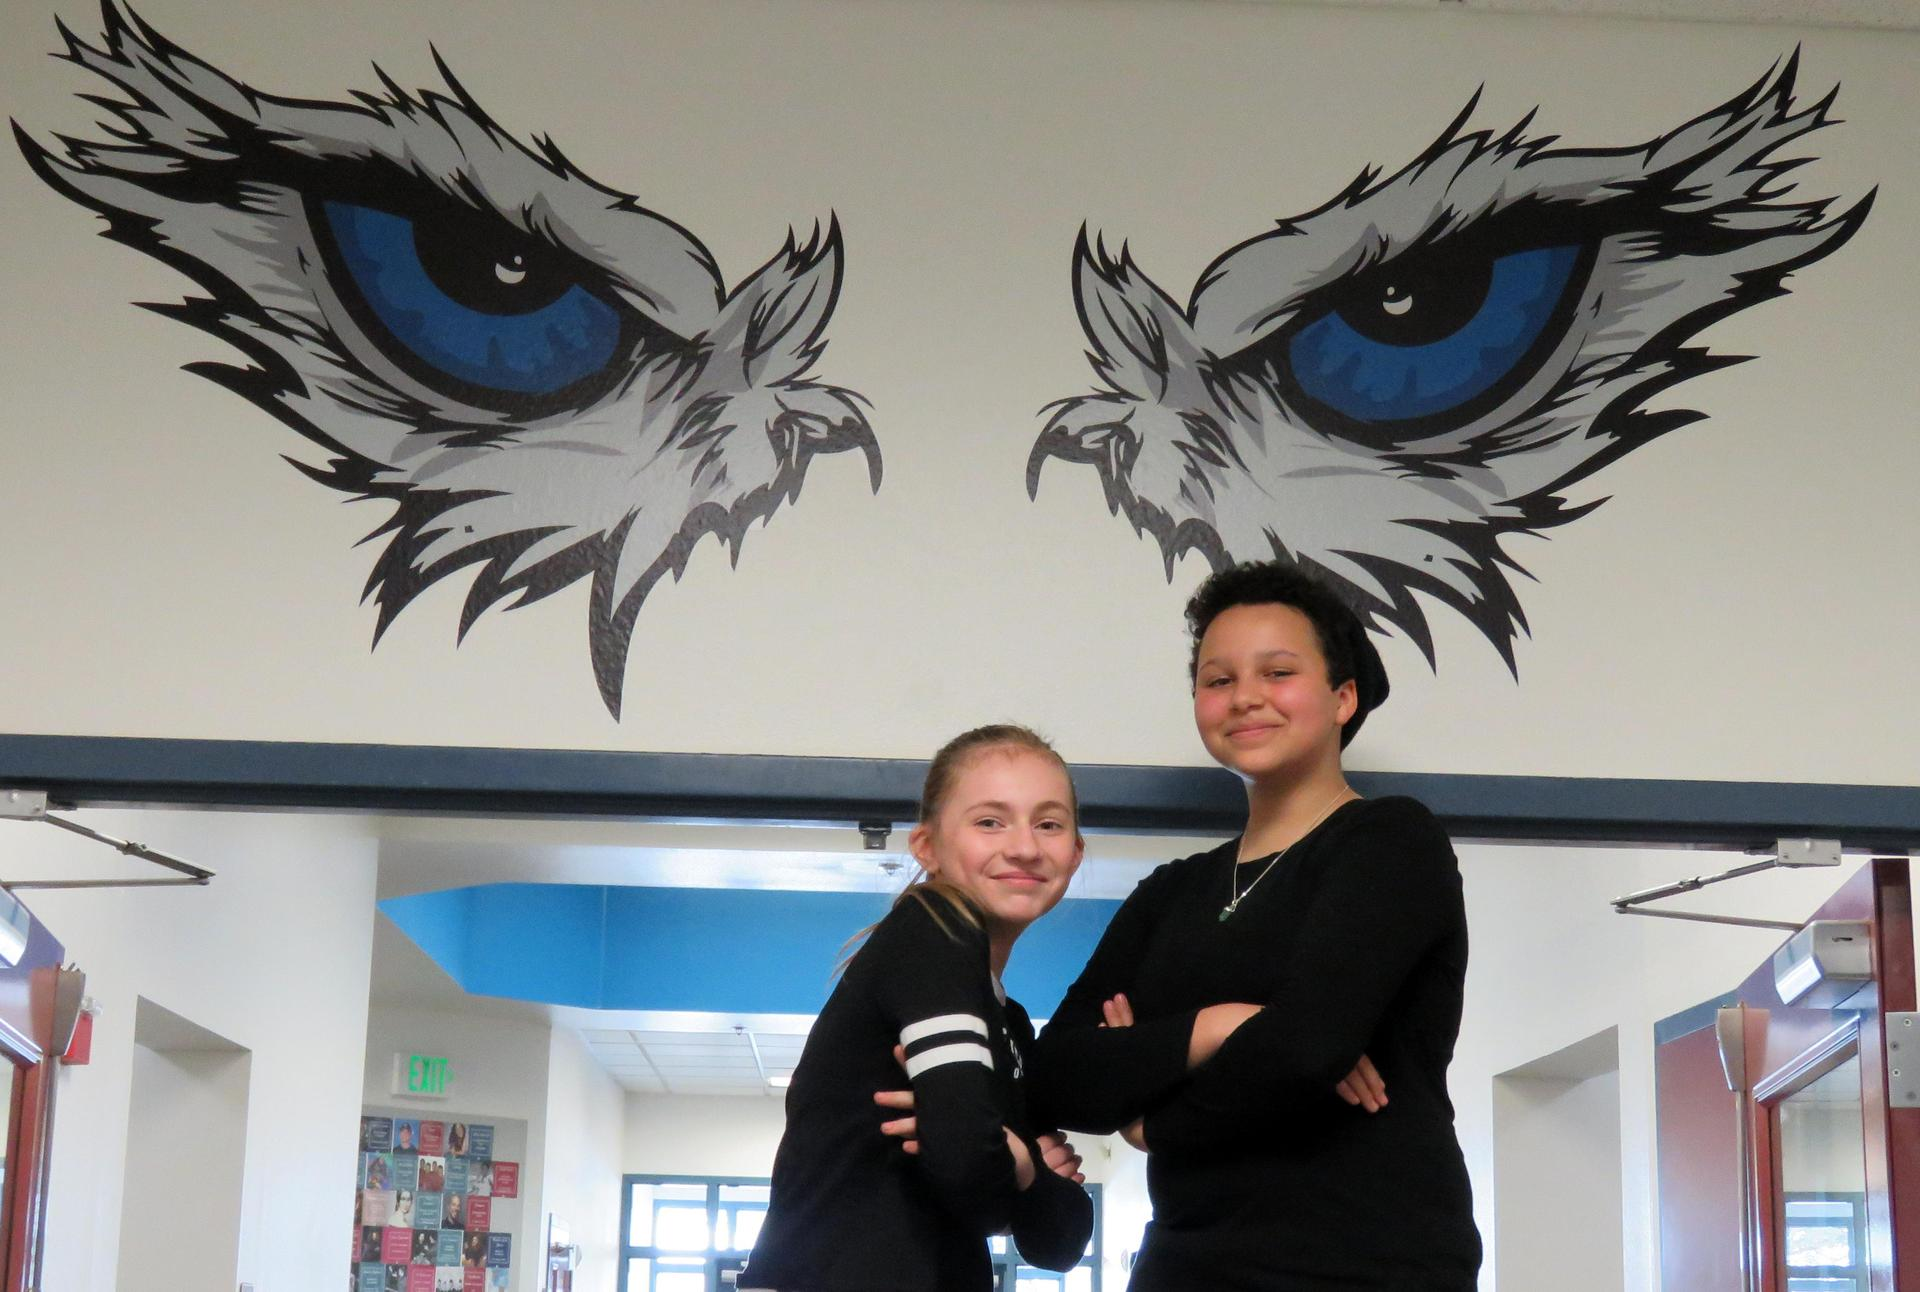 Two girls pose with folded arms under the Falcon Eyes painting on the walls at Park Ridge